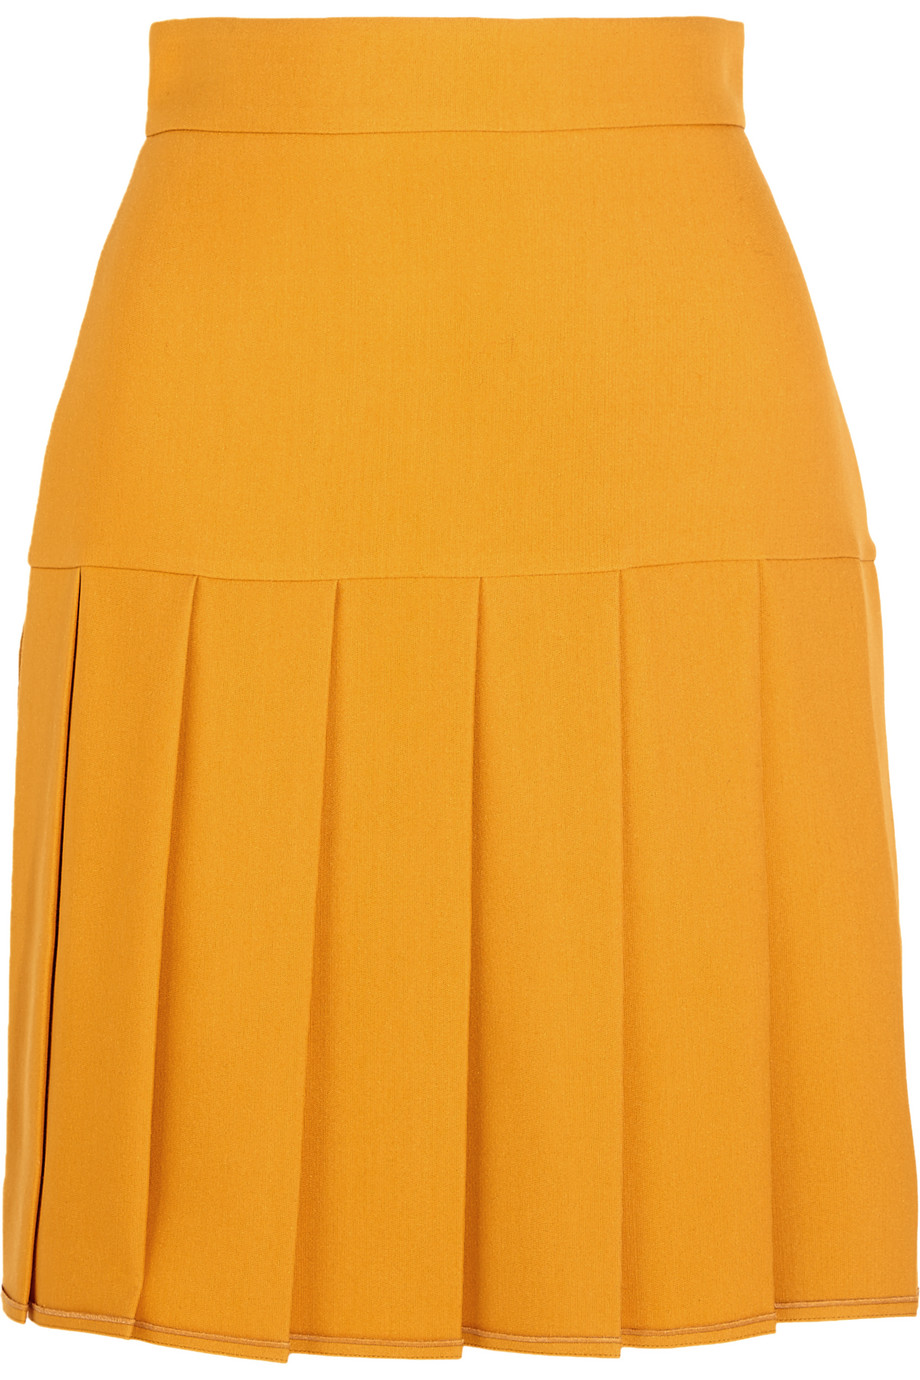 Gucci Pleated Silk and Wool-Blend Crepe Mini Skirt, Mustard, Women's, Size: 36